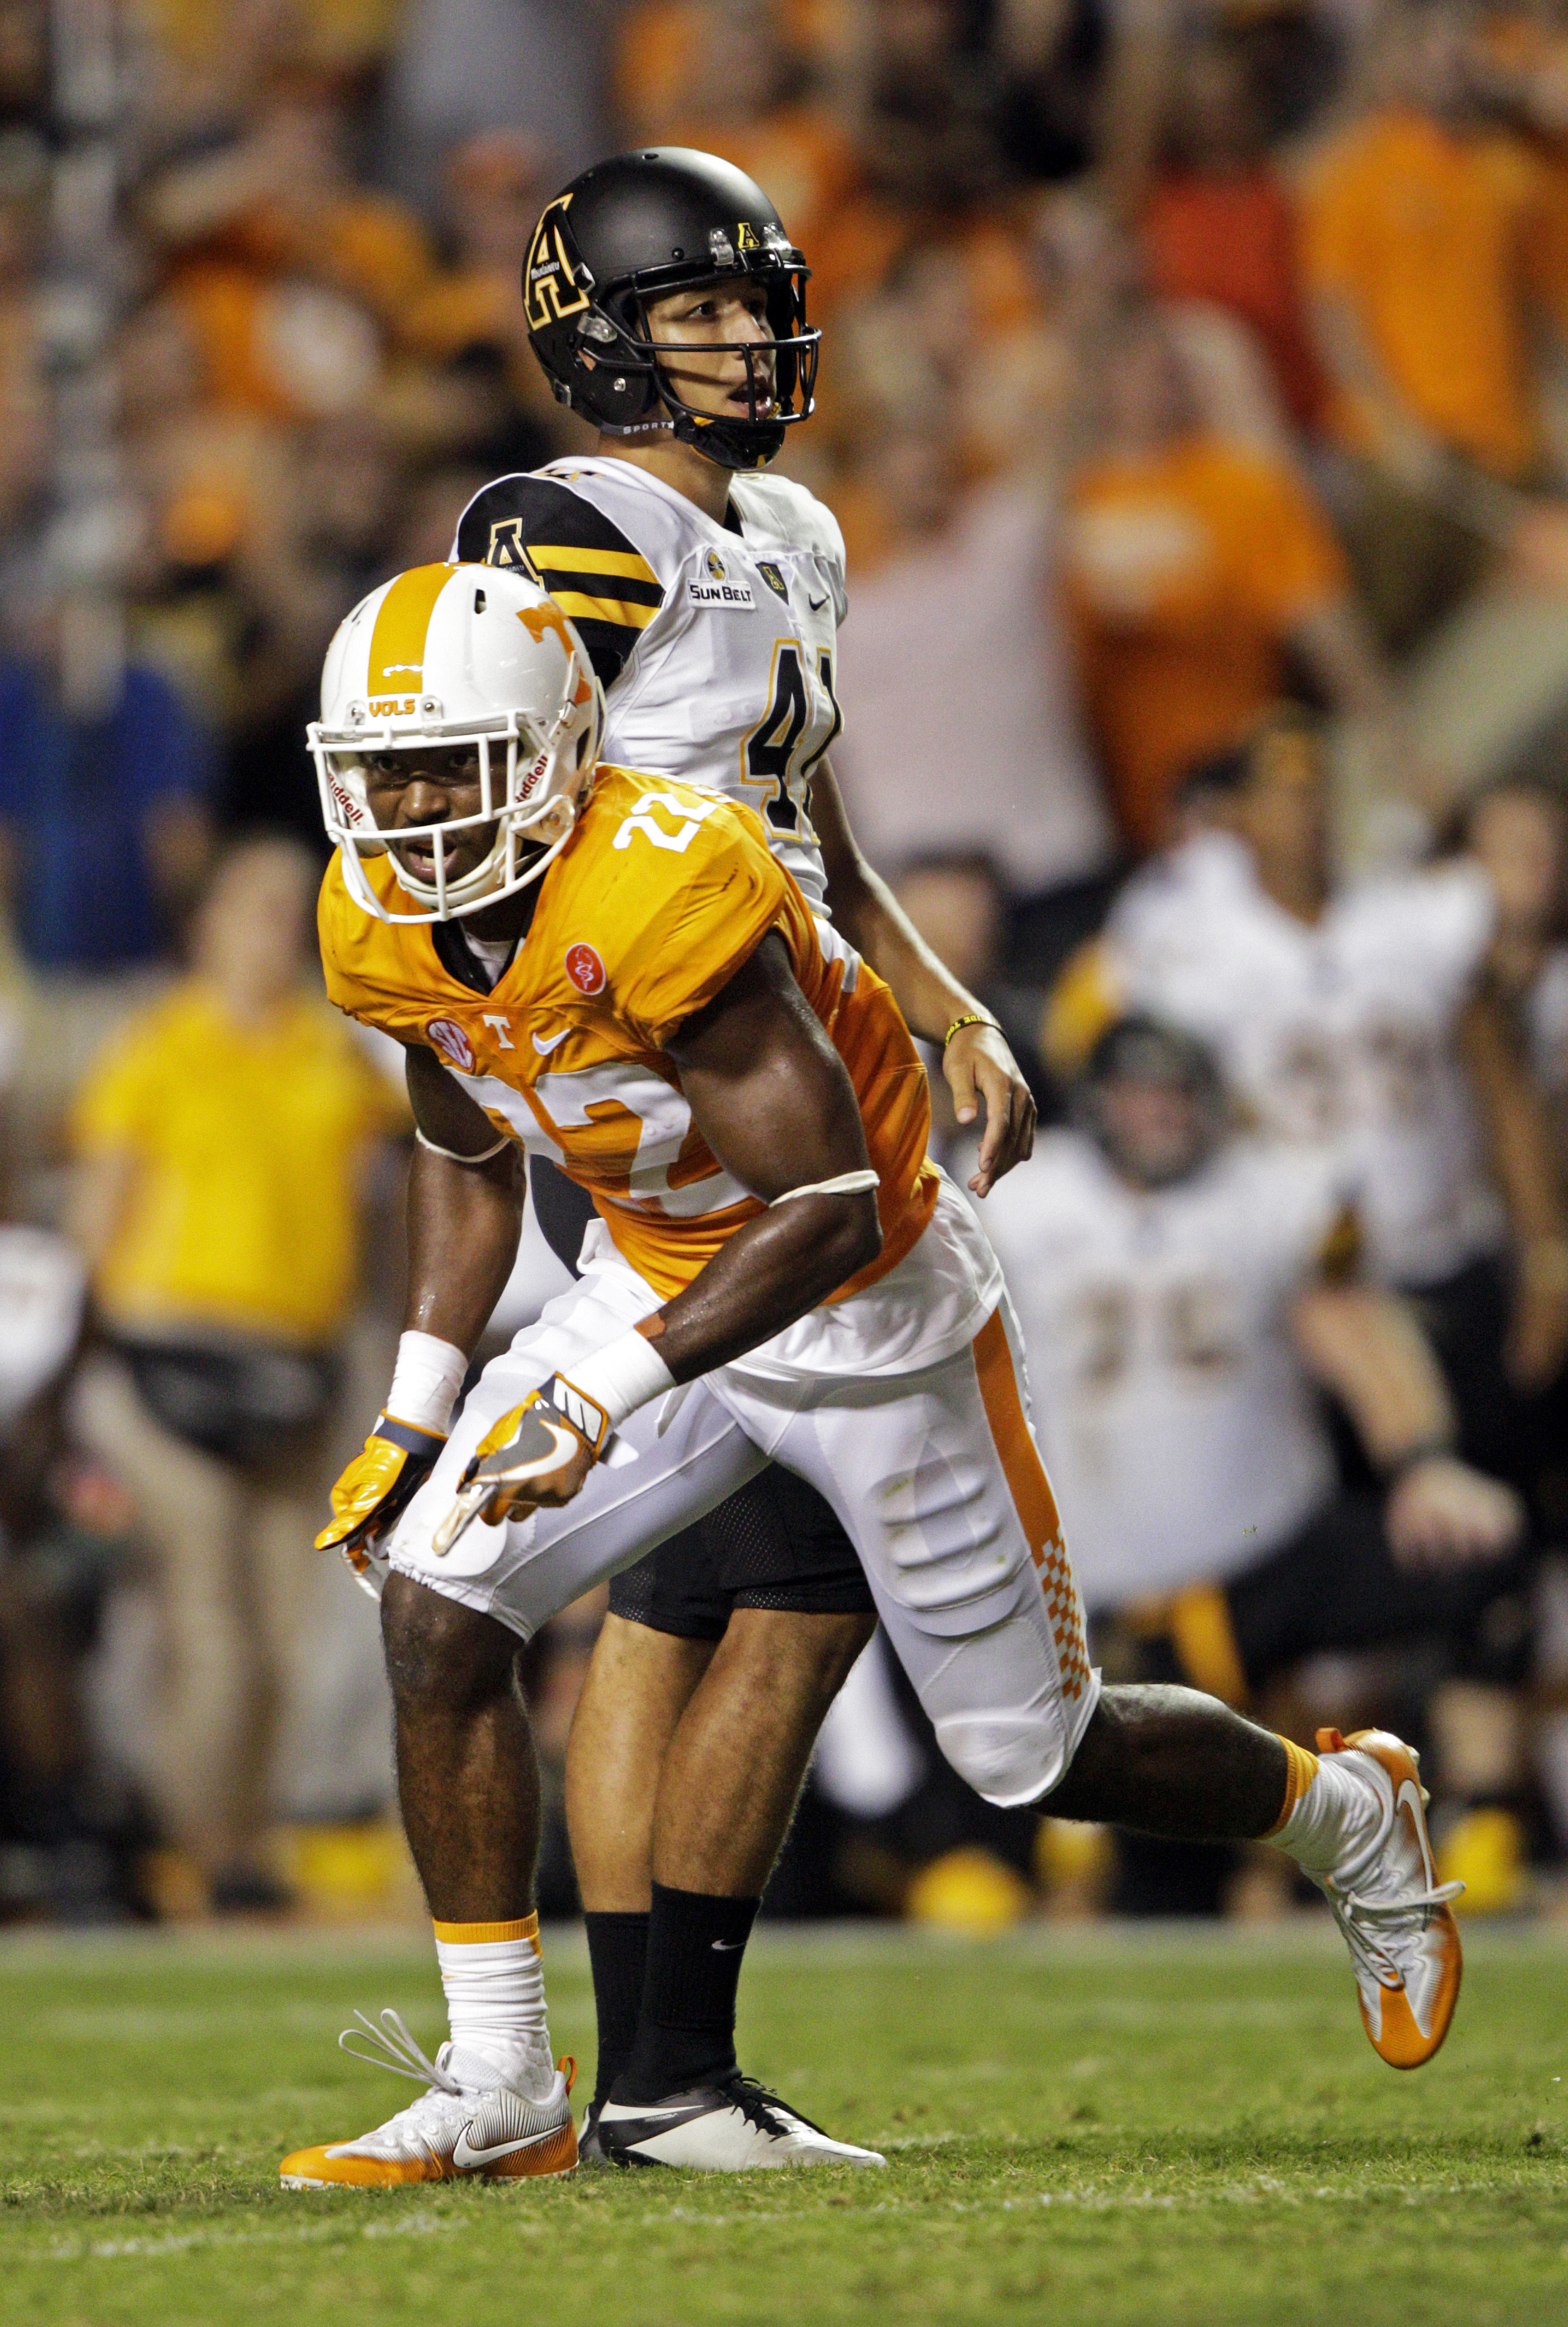 FILE -- In this Sept. 1, 2016 file photo, Tennessee defensive back Micah Abernathy (22) celebrates after Appalachian State place kicker Michael Rubino (41) missed a field goal in an NCAA college football game in Knoxville, Tenn. Abernathy left offense beh